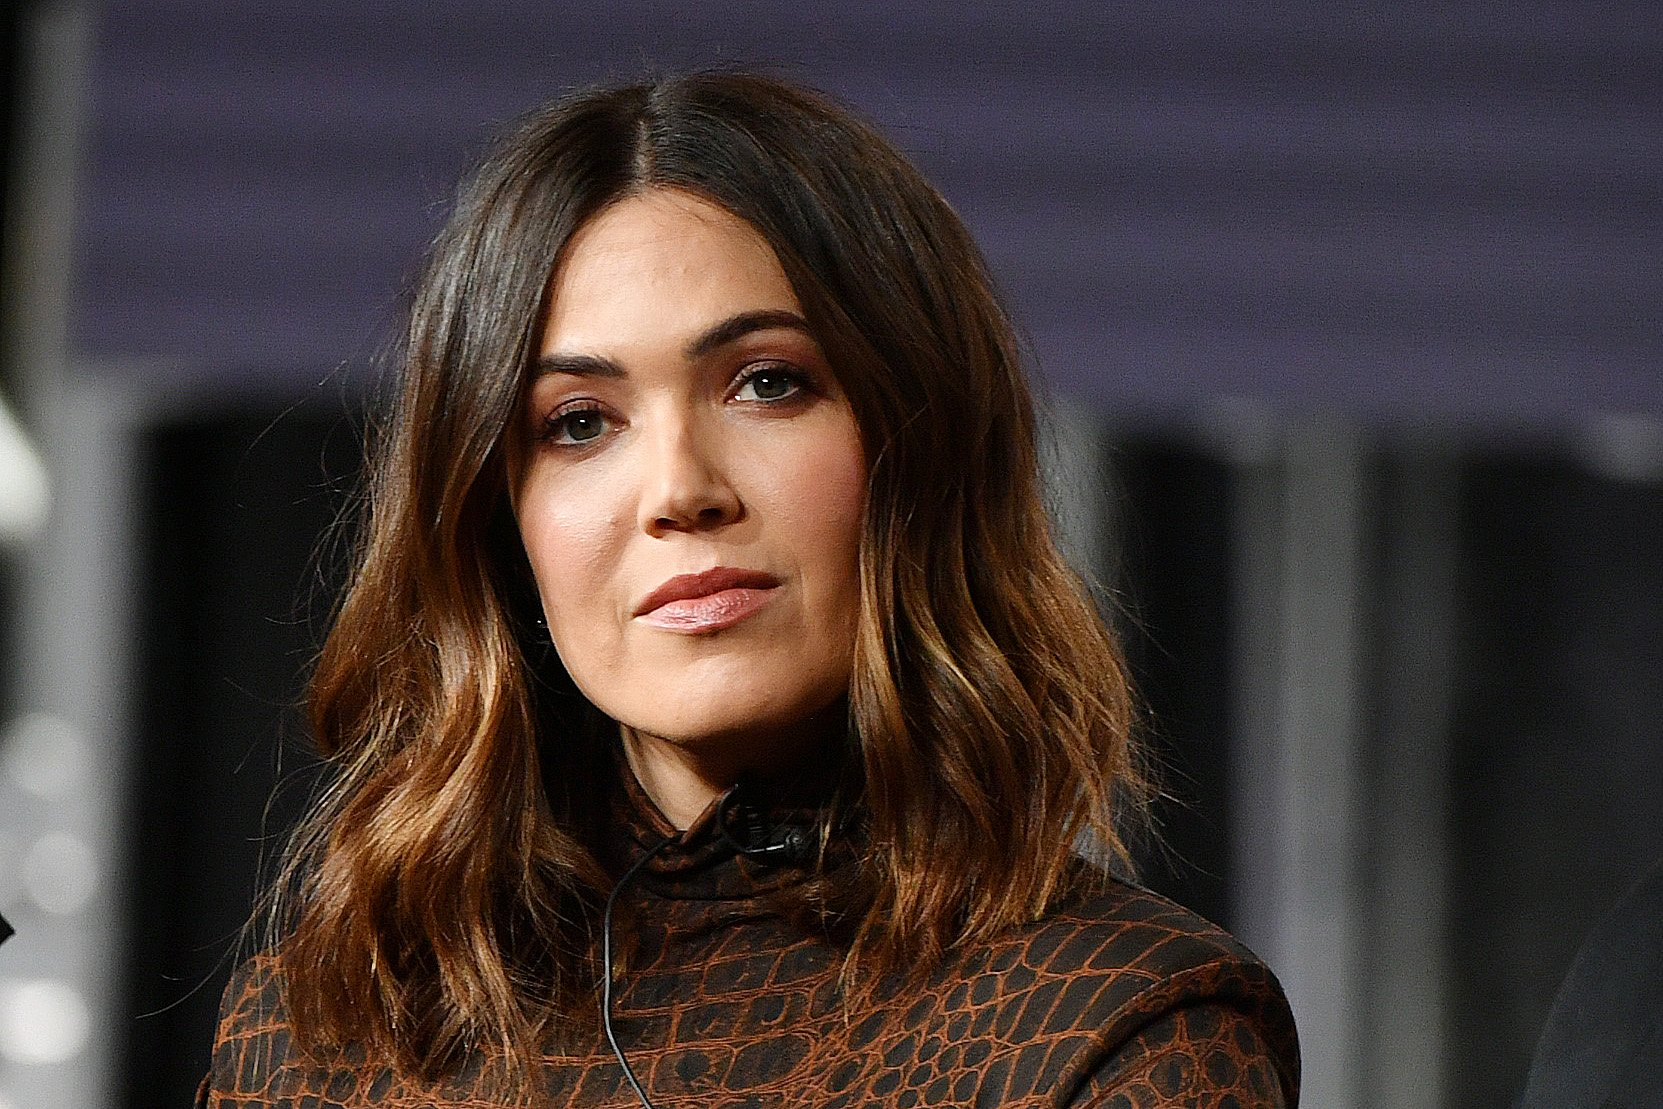 """Mandy Moore of """"This Is Us"""" speaks during the NBCUniversal segment of the 2020 Winter TCA Press Tour at The Langham Huntington, Pasadena on January 11, 2020 in Pasadena, California 